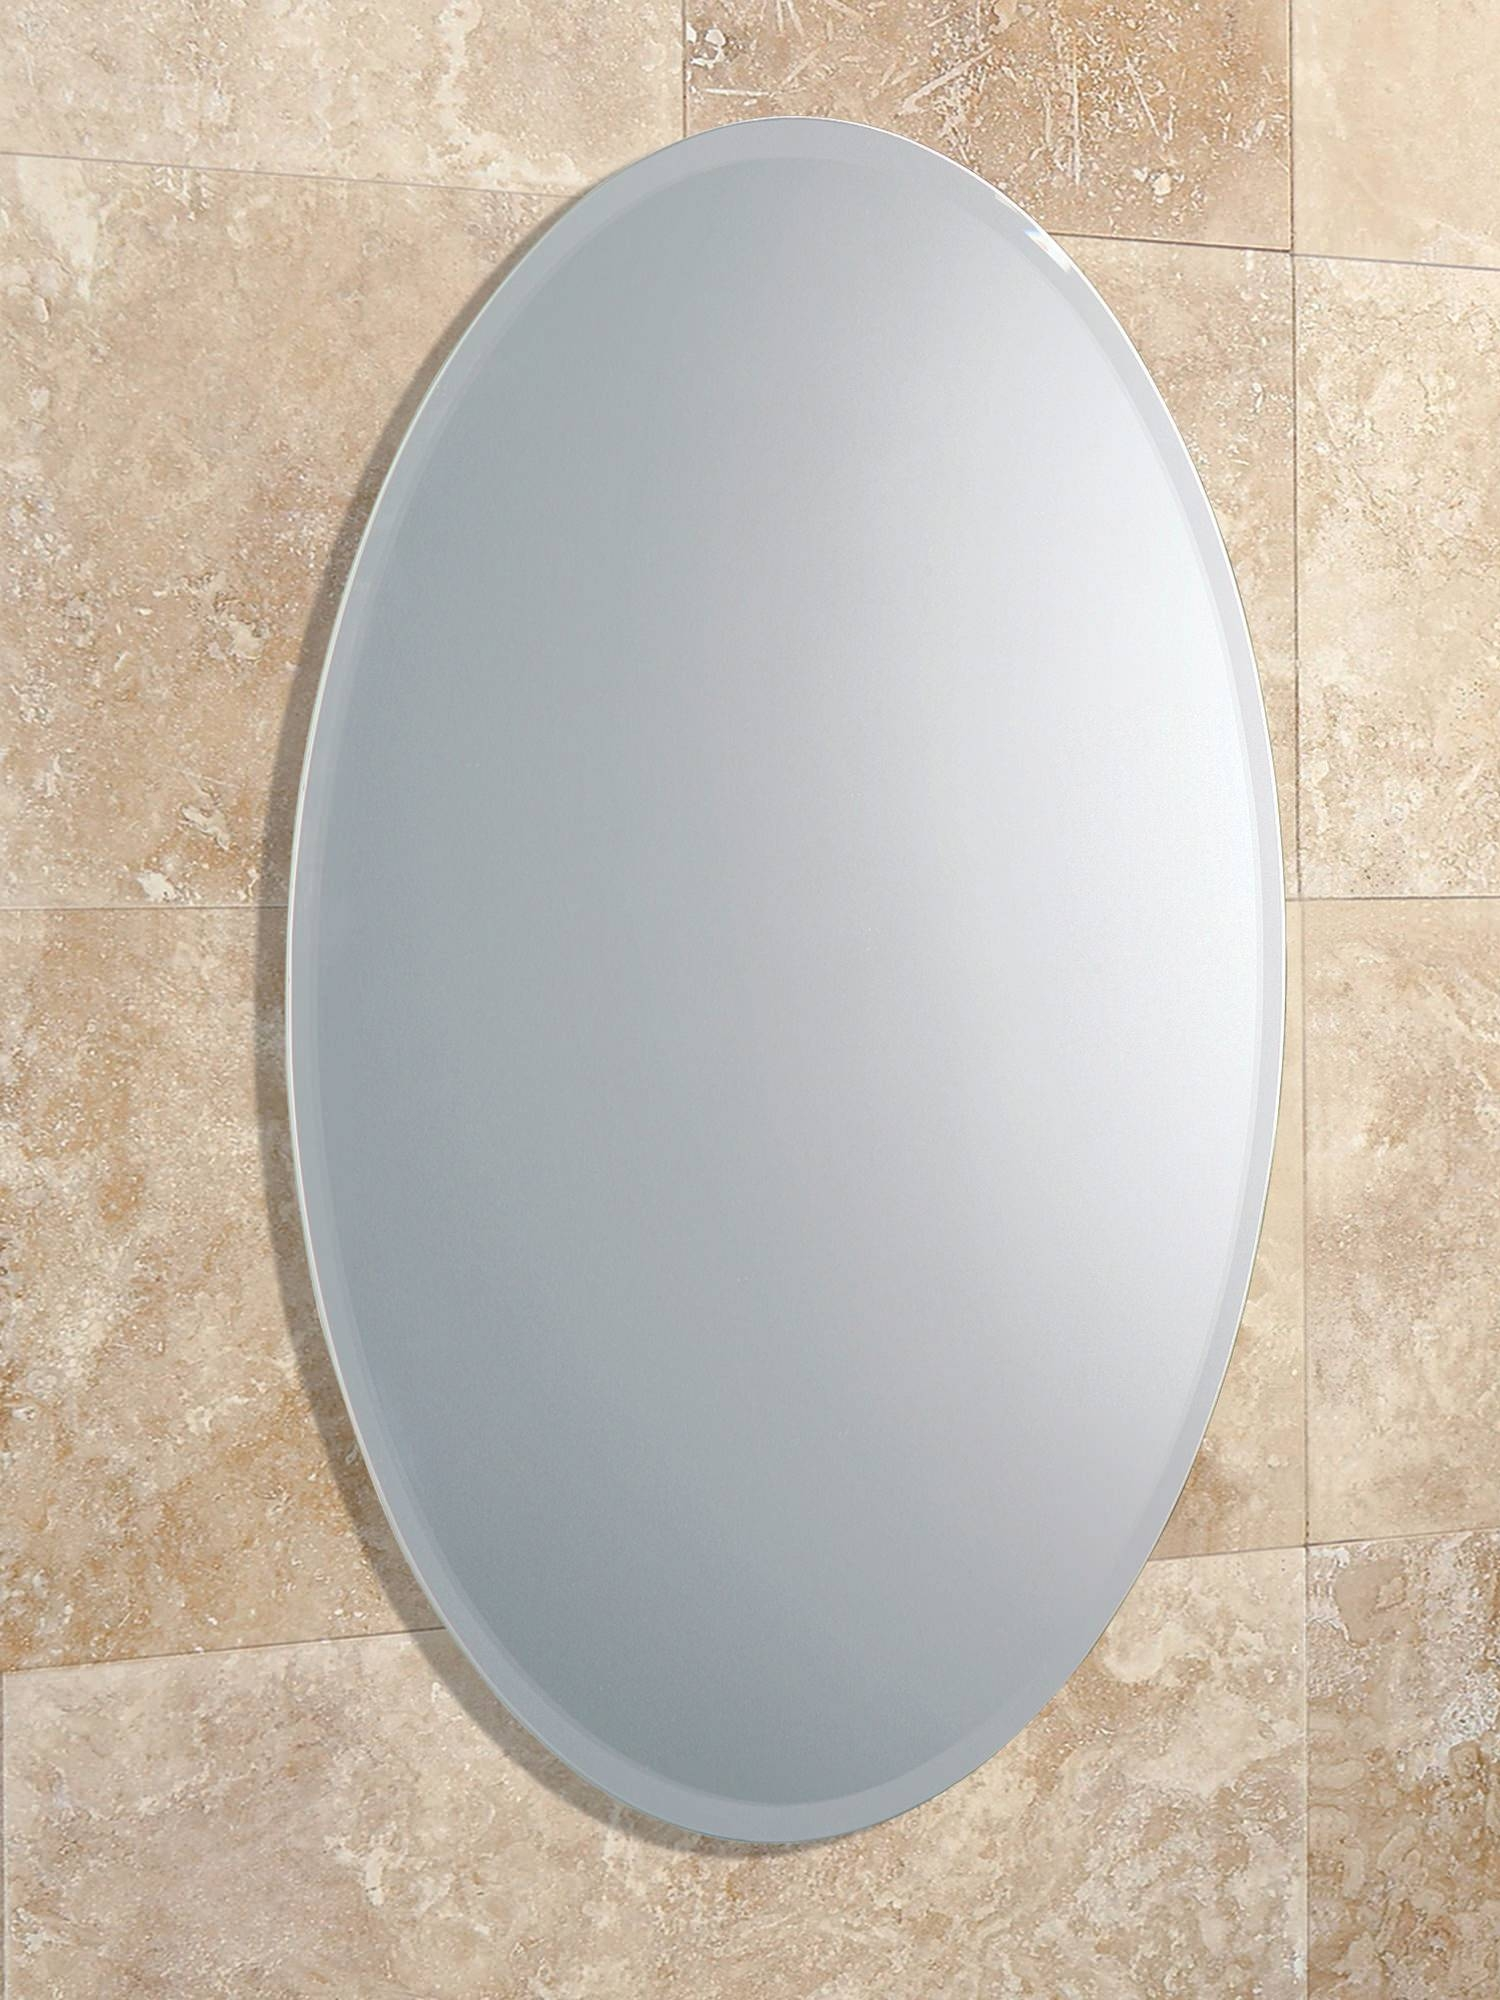 Hib Alfera Oval Shaped Mirror With Bevelled Edge | 61643000 With Regard To Bevelled Oval Mirrors (View 7 of 15)